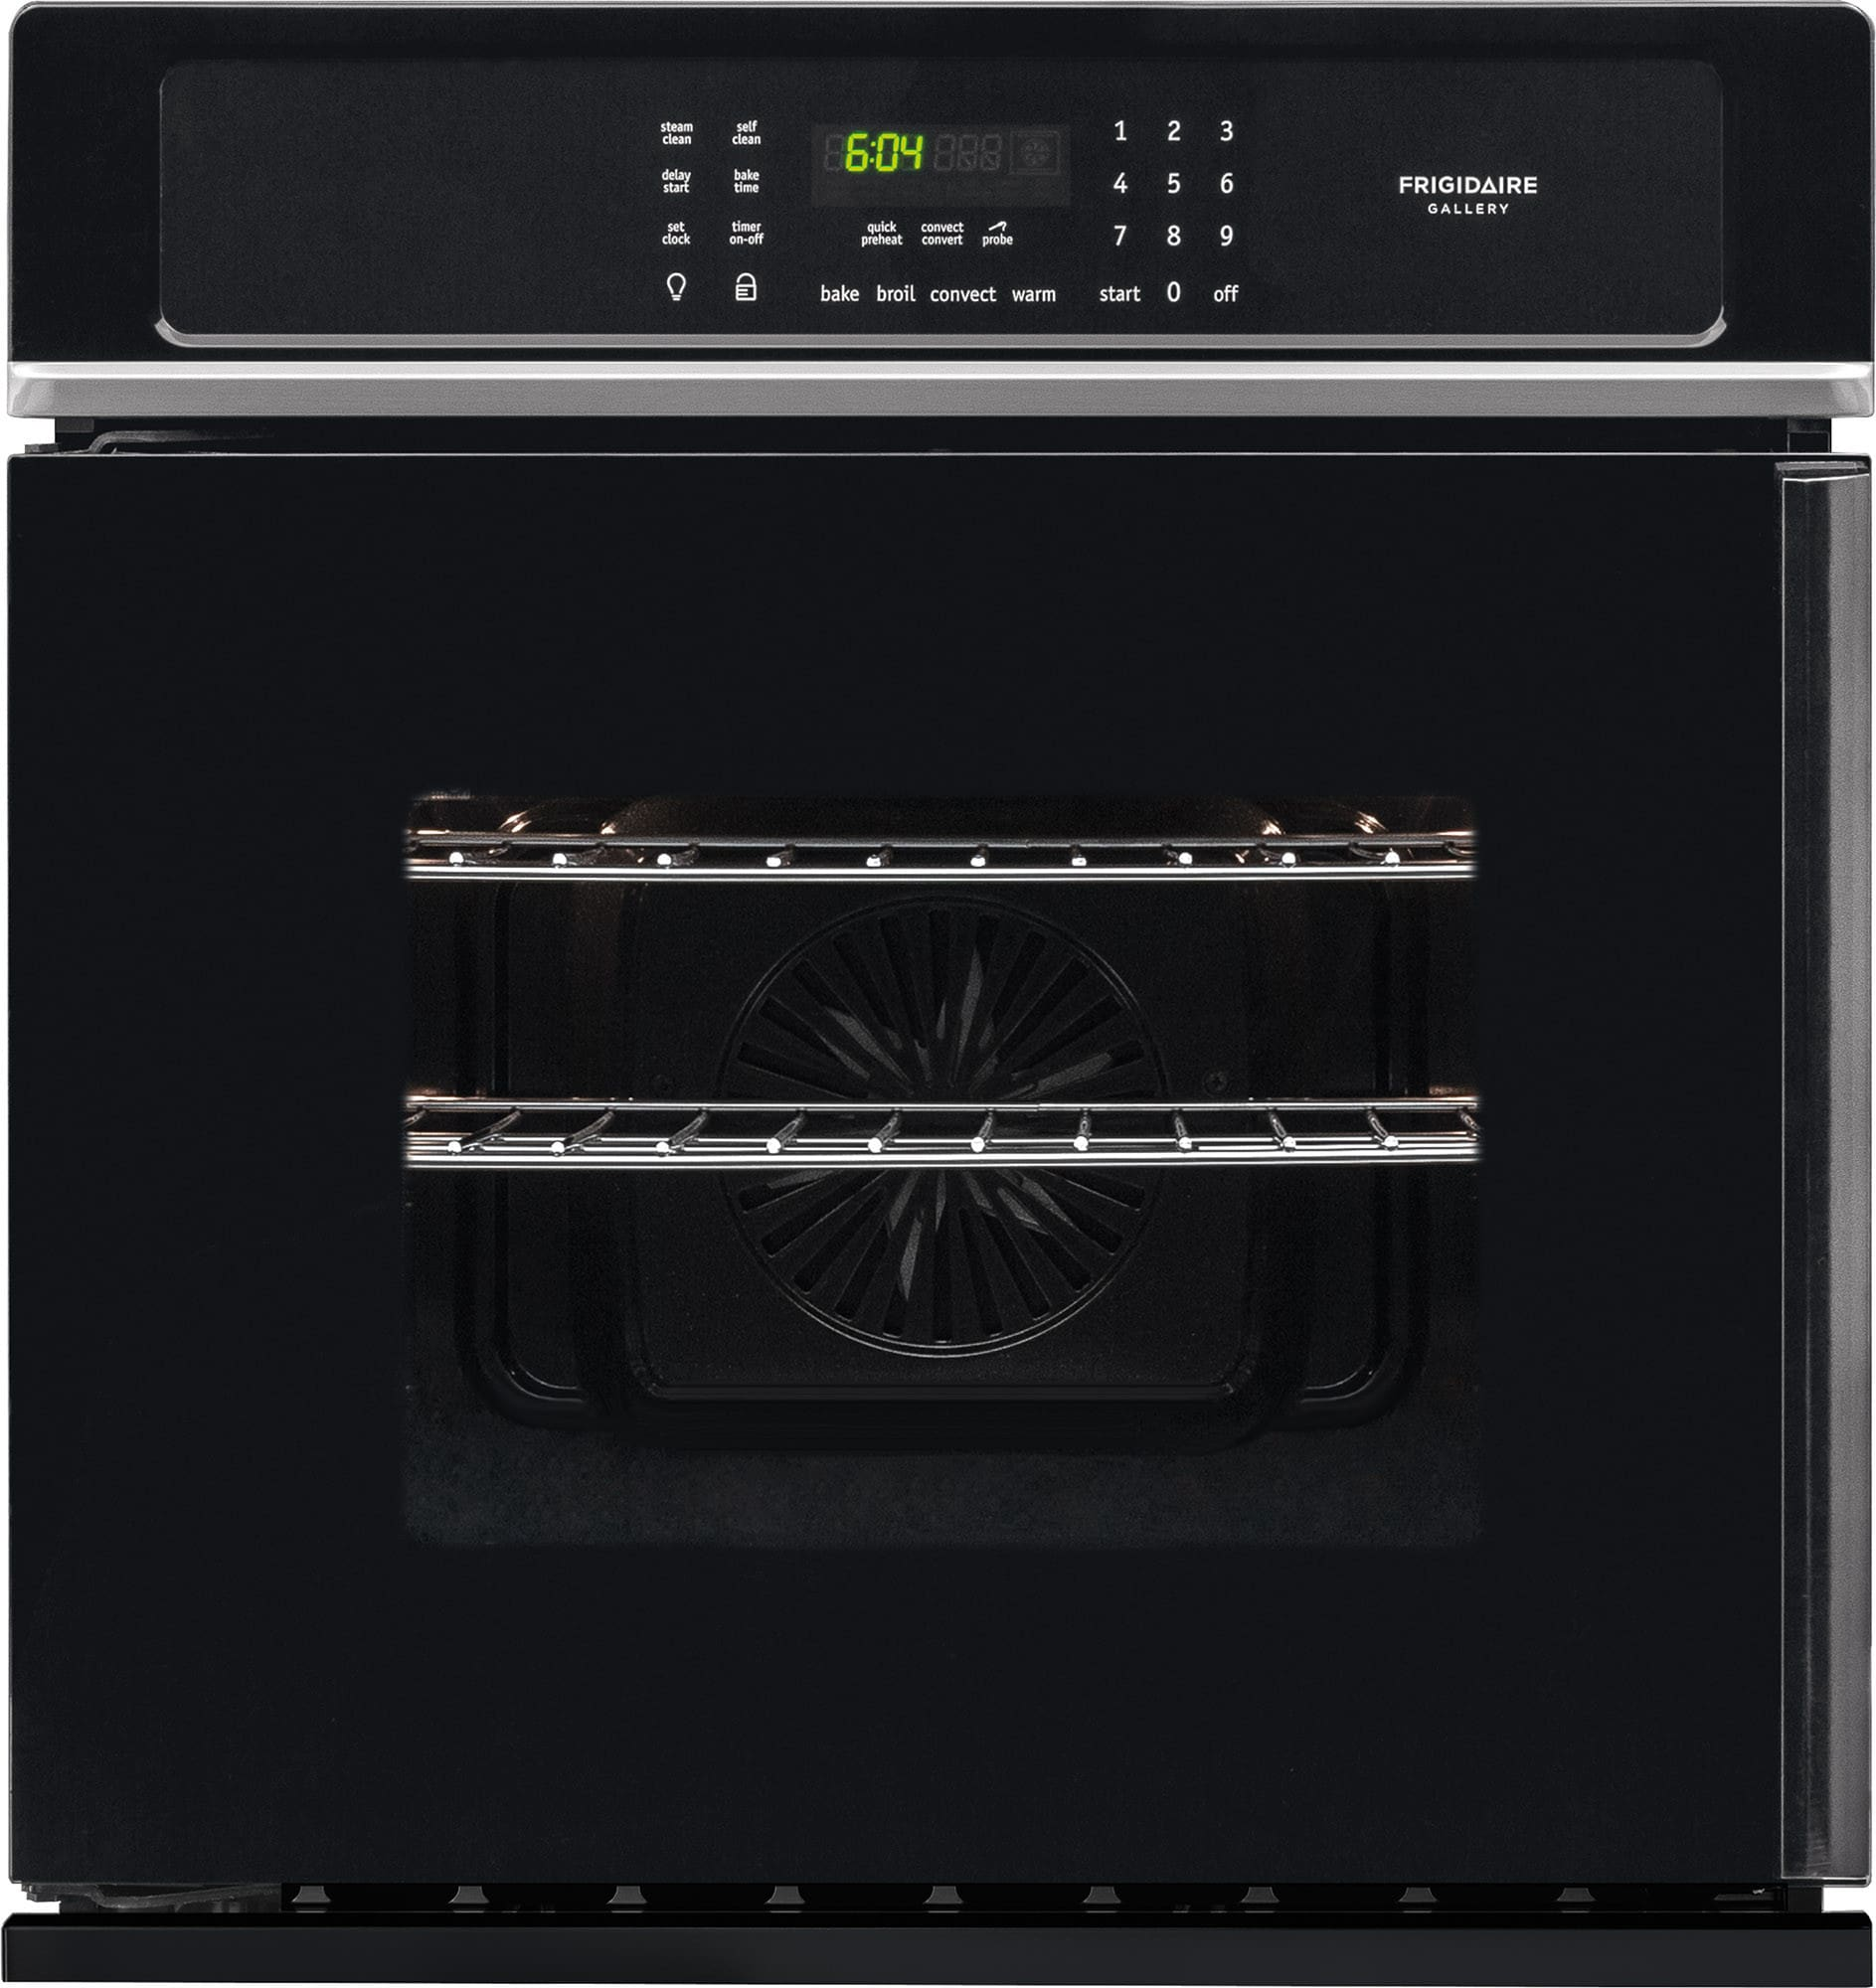 frigidaire double wall oven wiring wiring diagram frigidaire wall oven parts image about wiring